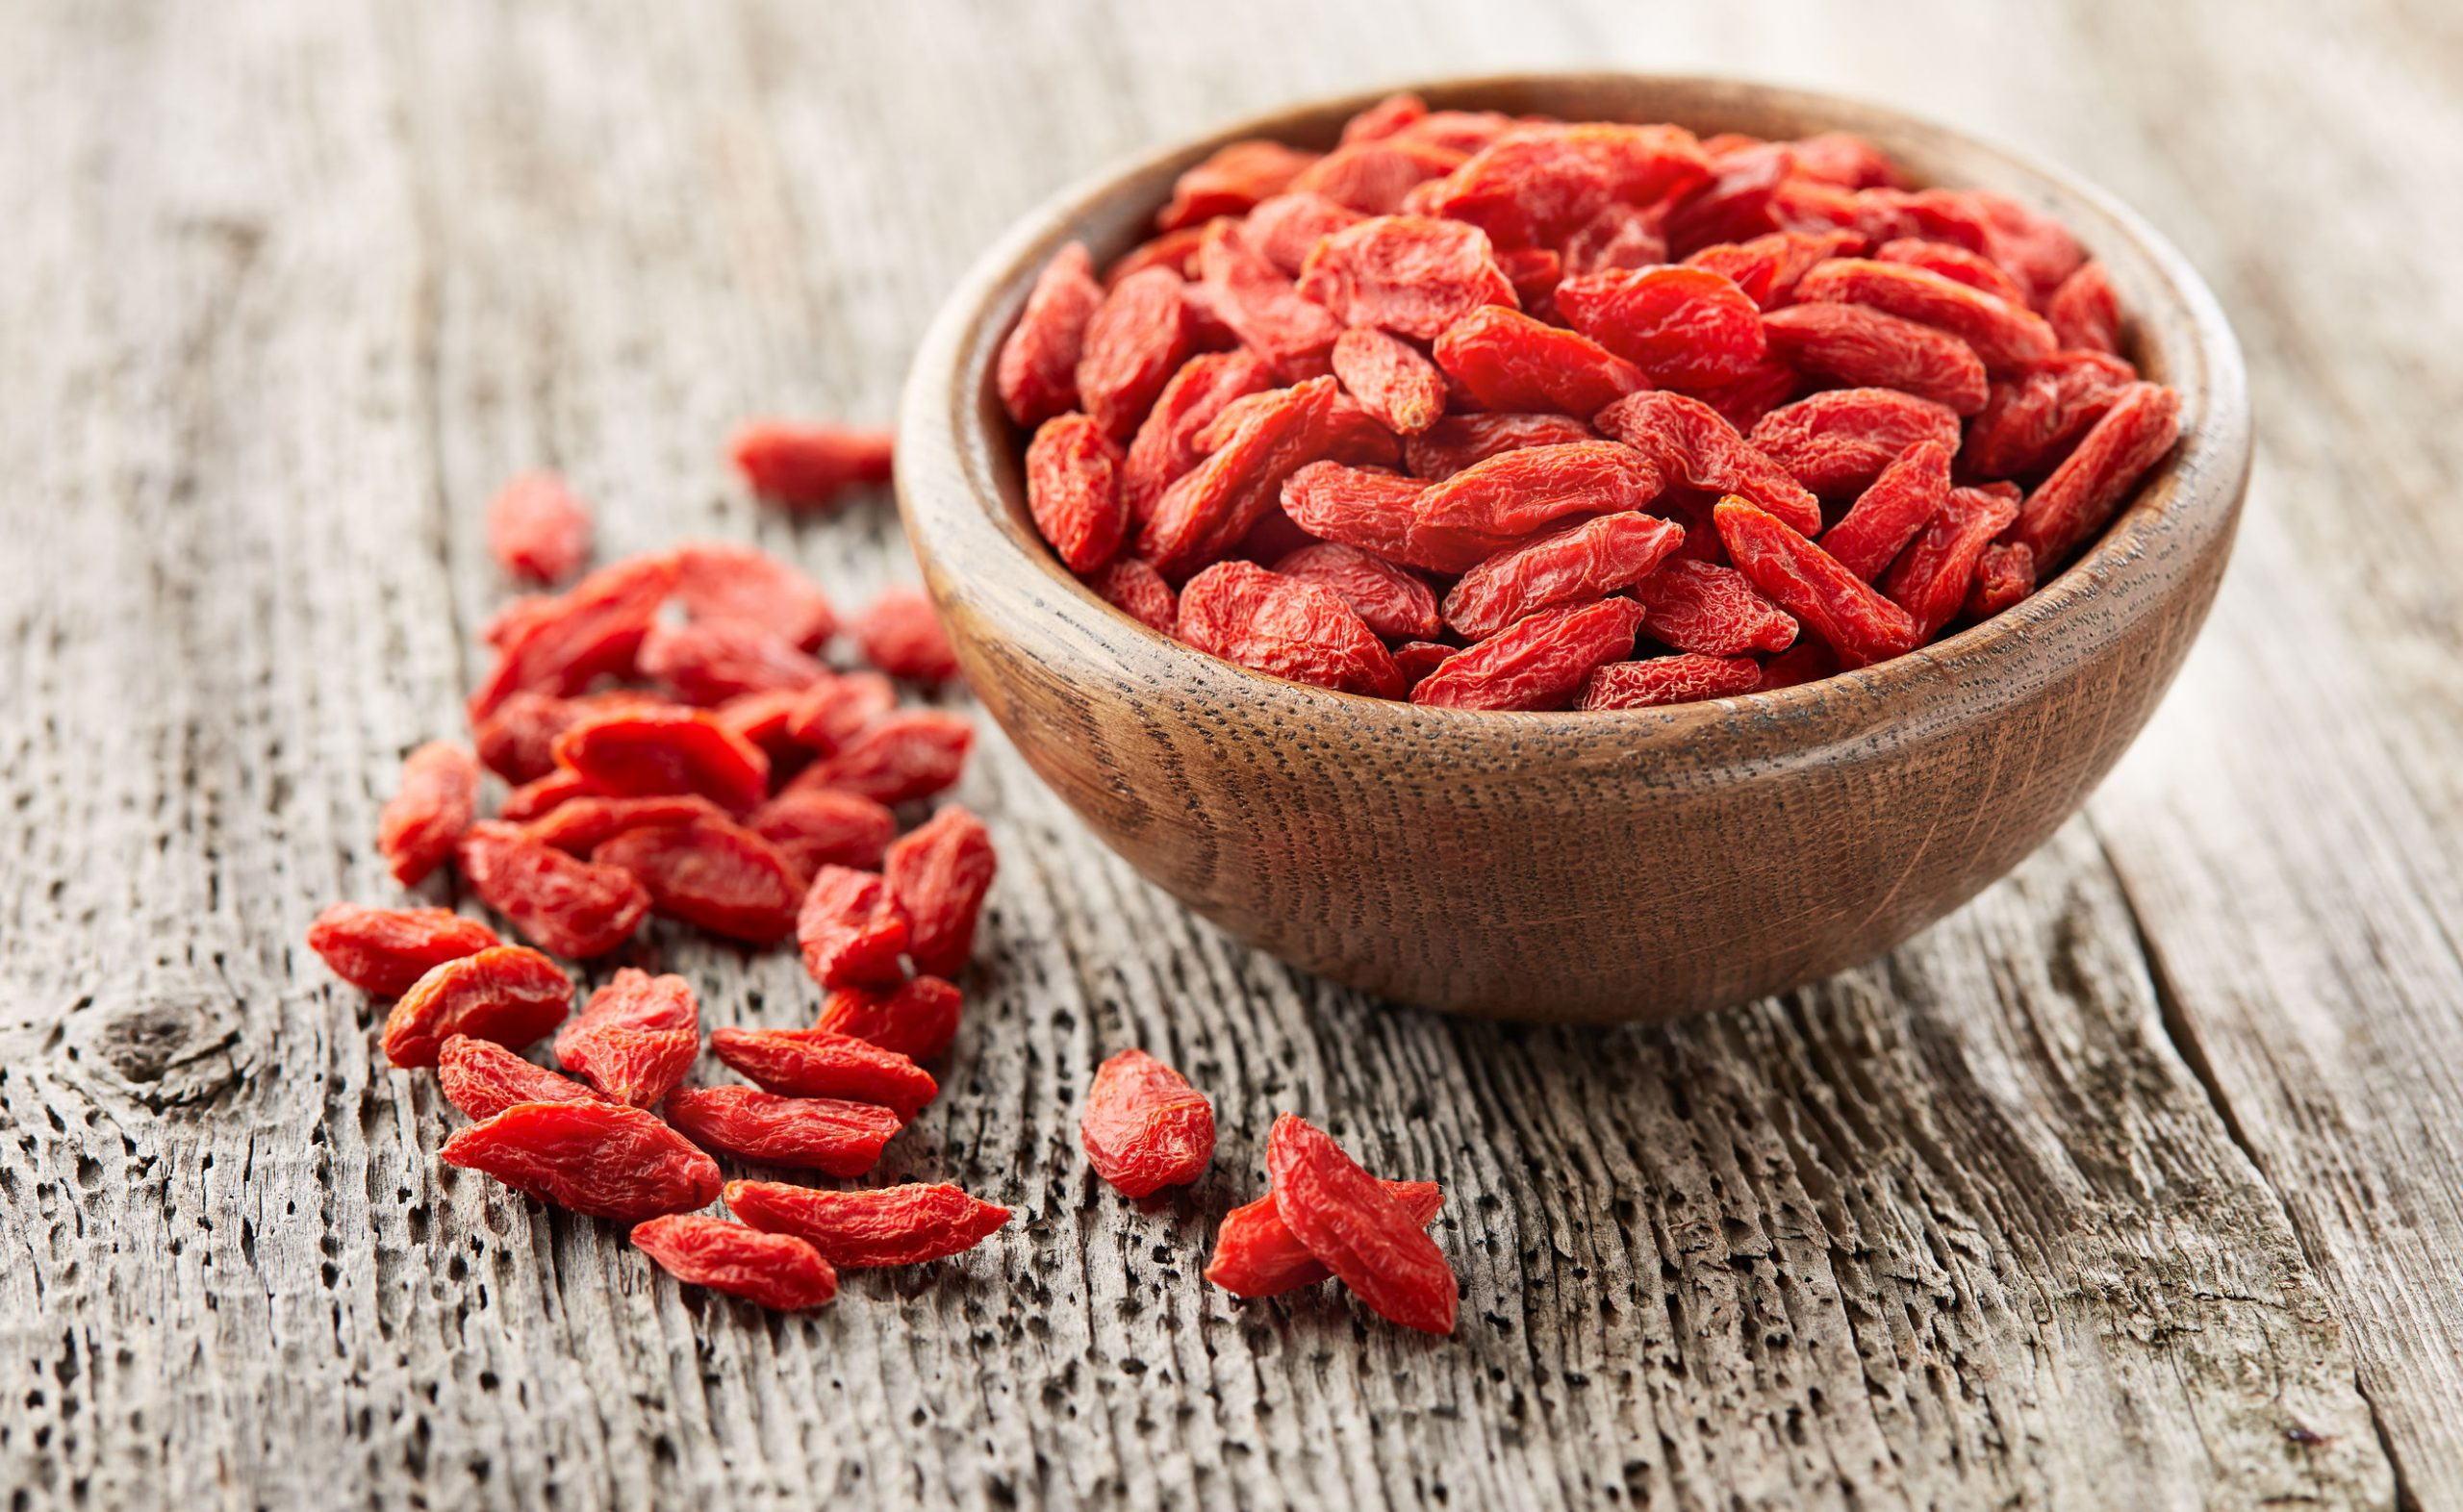 Best Goji Berries 2020: Shopping Guide & Review